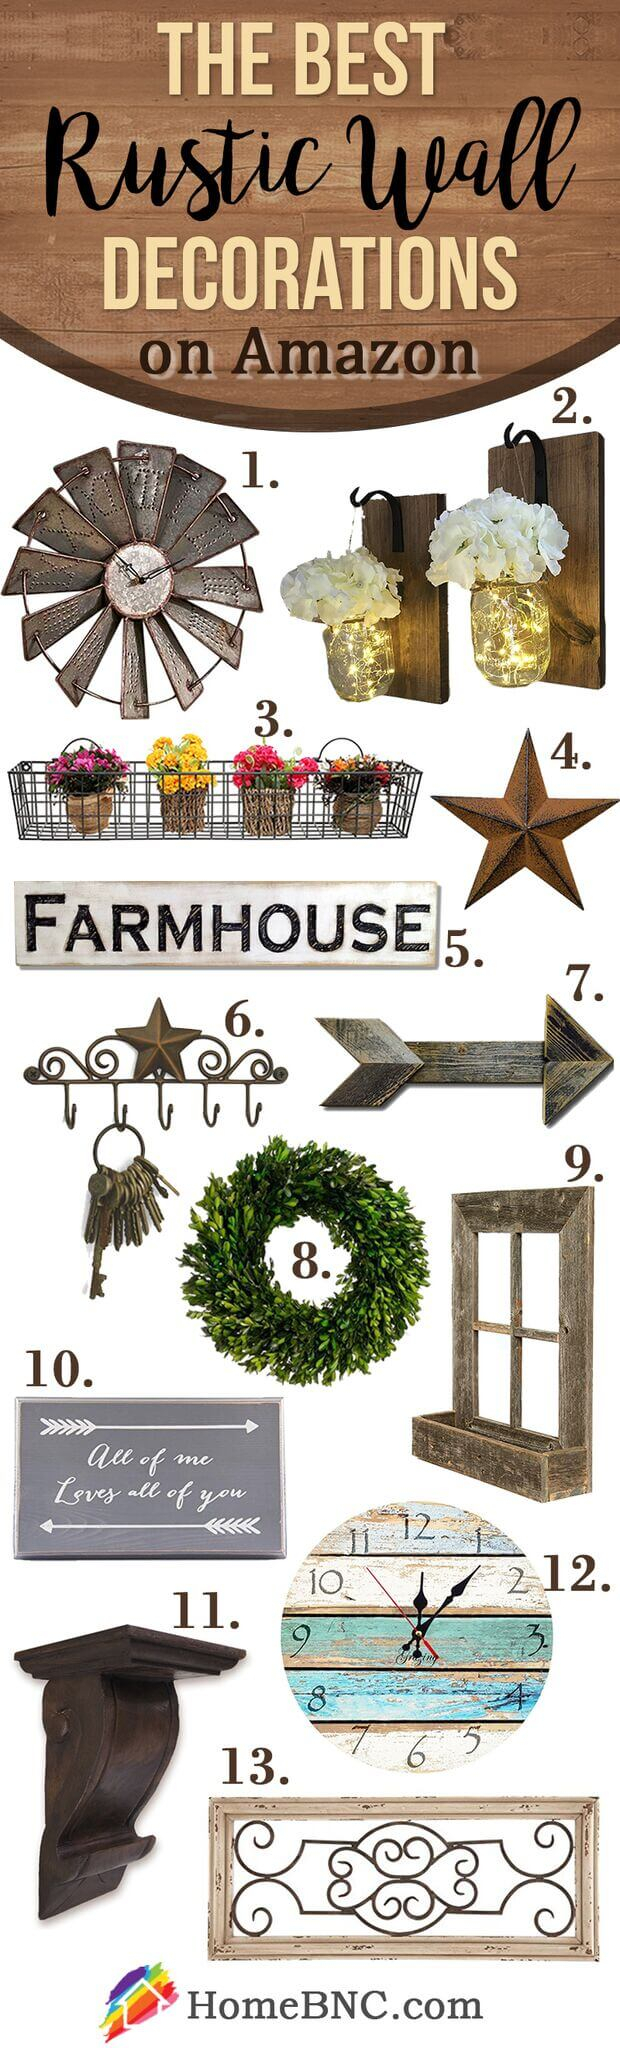 45+ Best Farmhouse Wall Decor Ideas And Designs For 2019 With Regard To Farm Metal Wall Rack And 3 Tin Pot With Hanger Wall Decor (View 15 of 30)